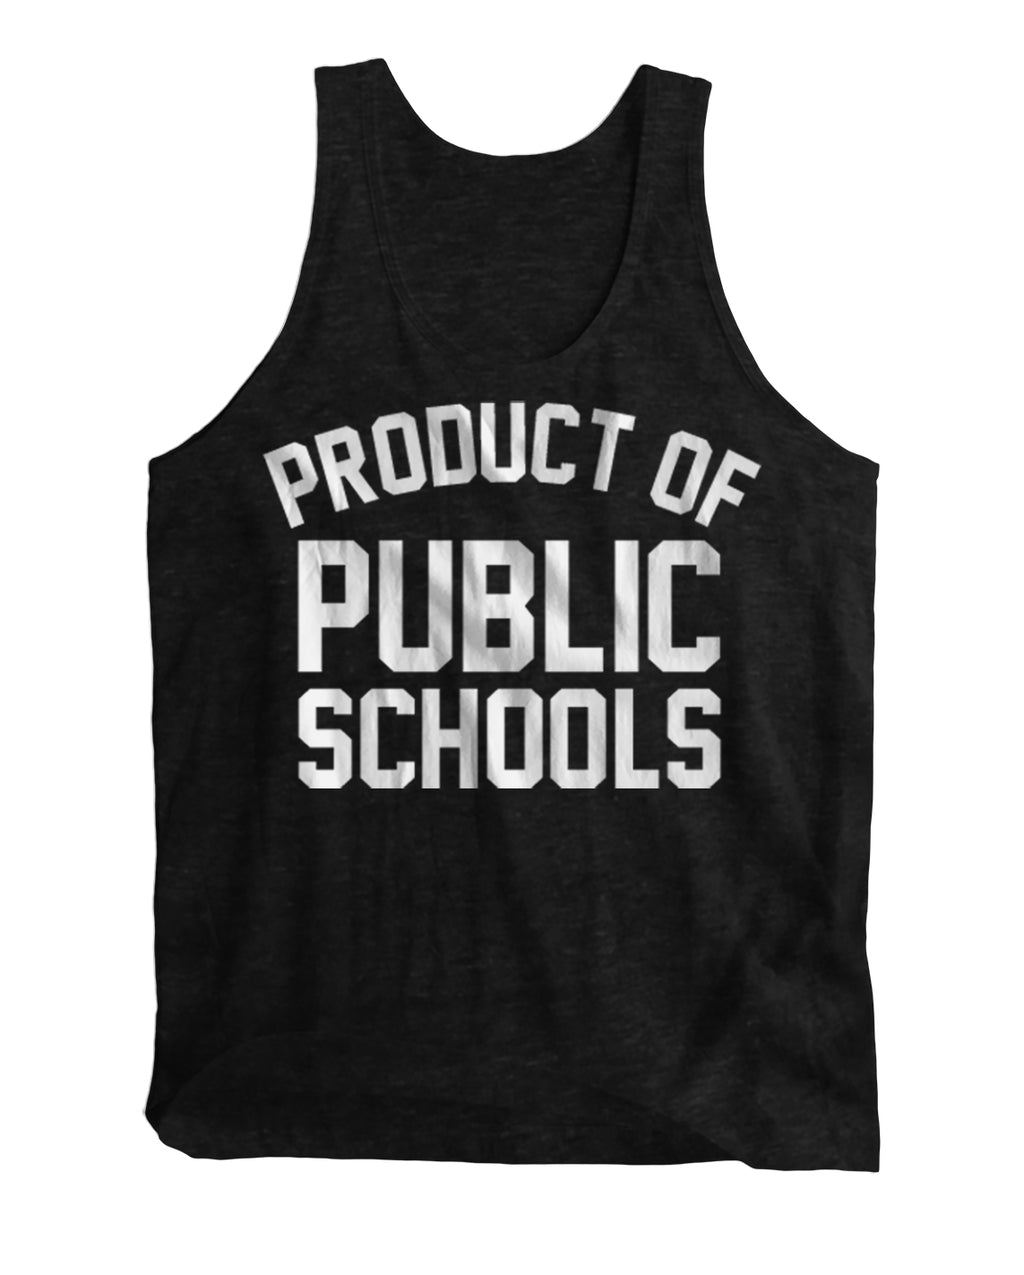 Product of Public Schools Tanks [Unisex] - Originalitees